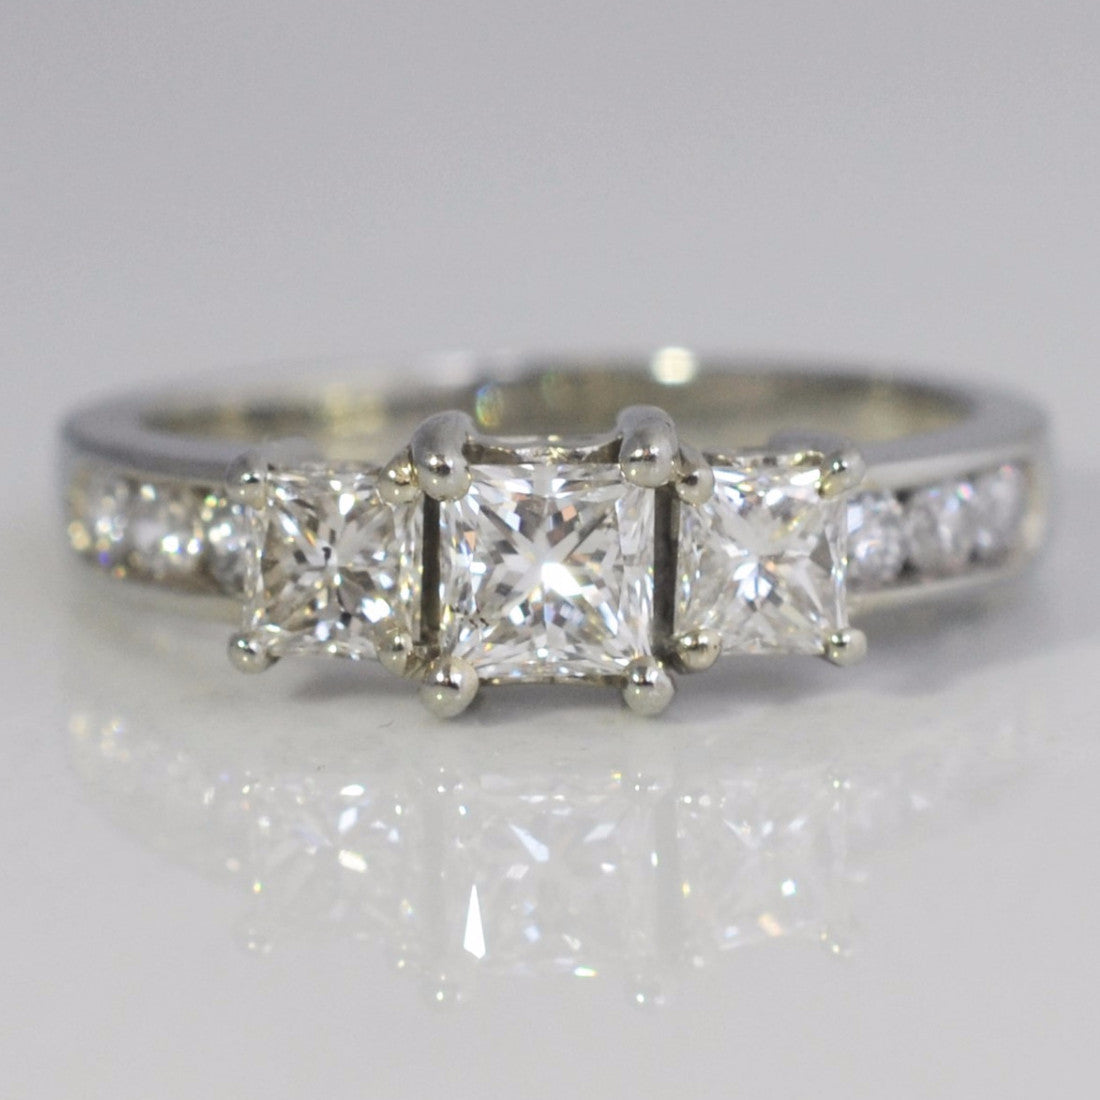 Princess Cut Three Stone Engagement Ring | 1.06 ctw, SZ 6 |